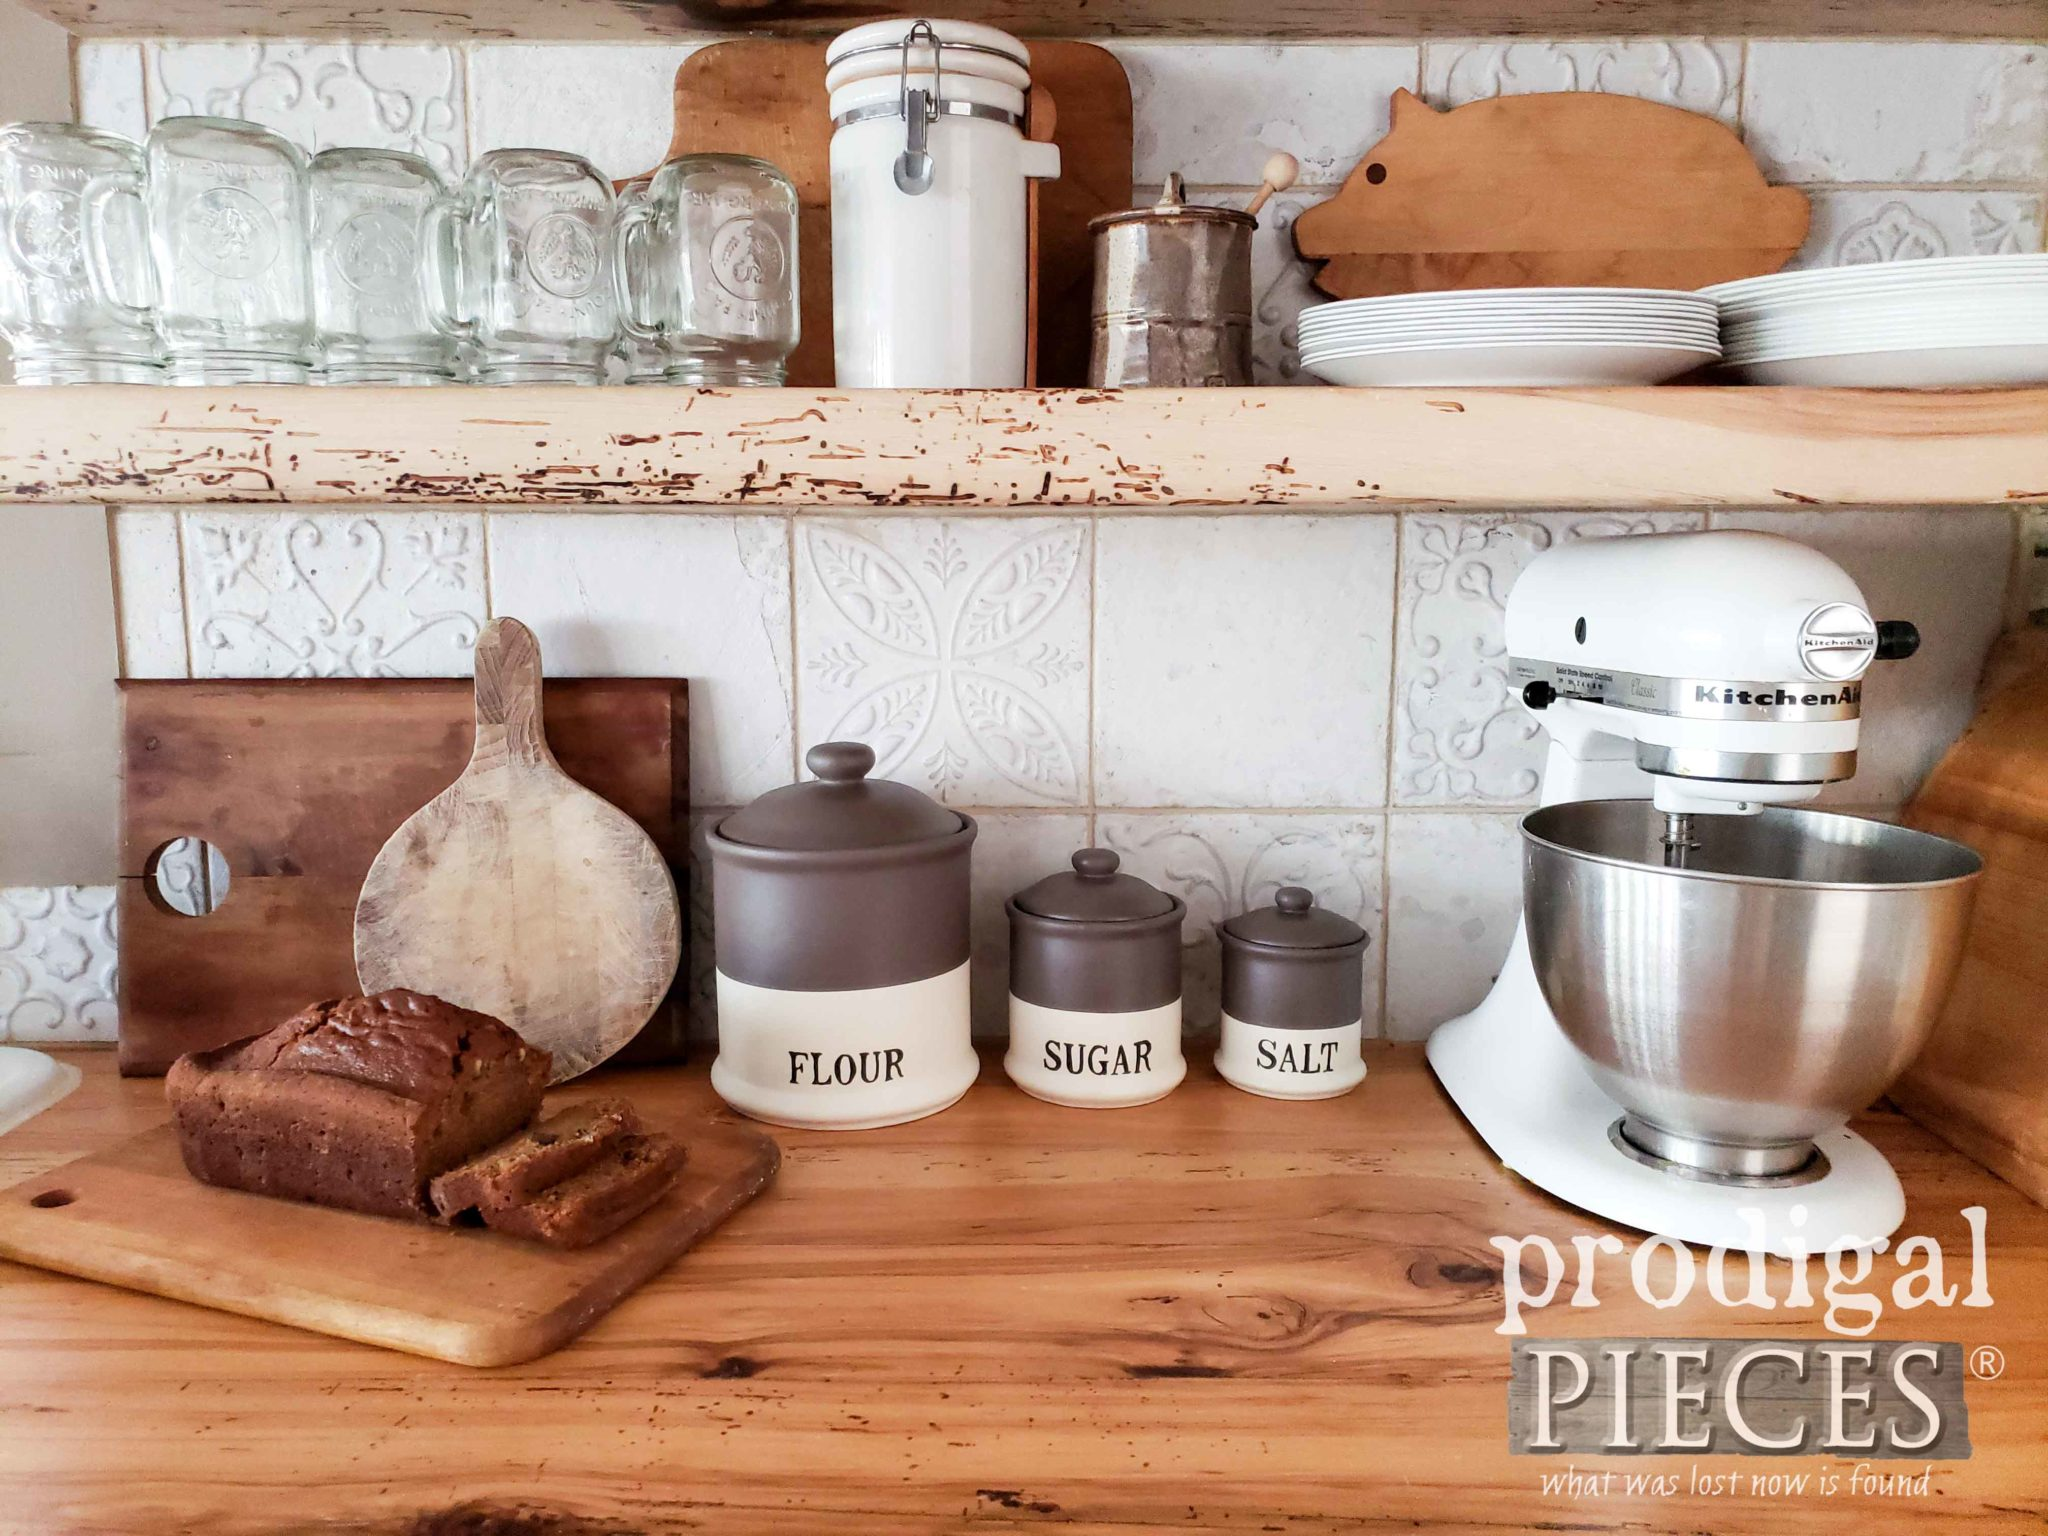 Rustic Style Farmhouse Kitchen Counter with DIY Canisters by Larissa of Prodigal Pieces | prodigalpieces.com